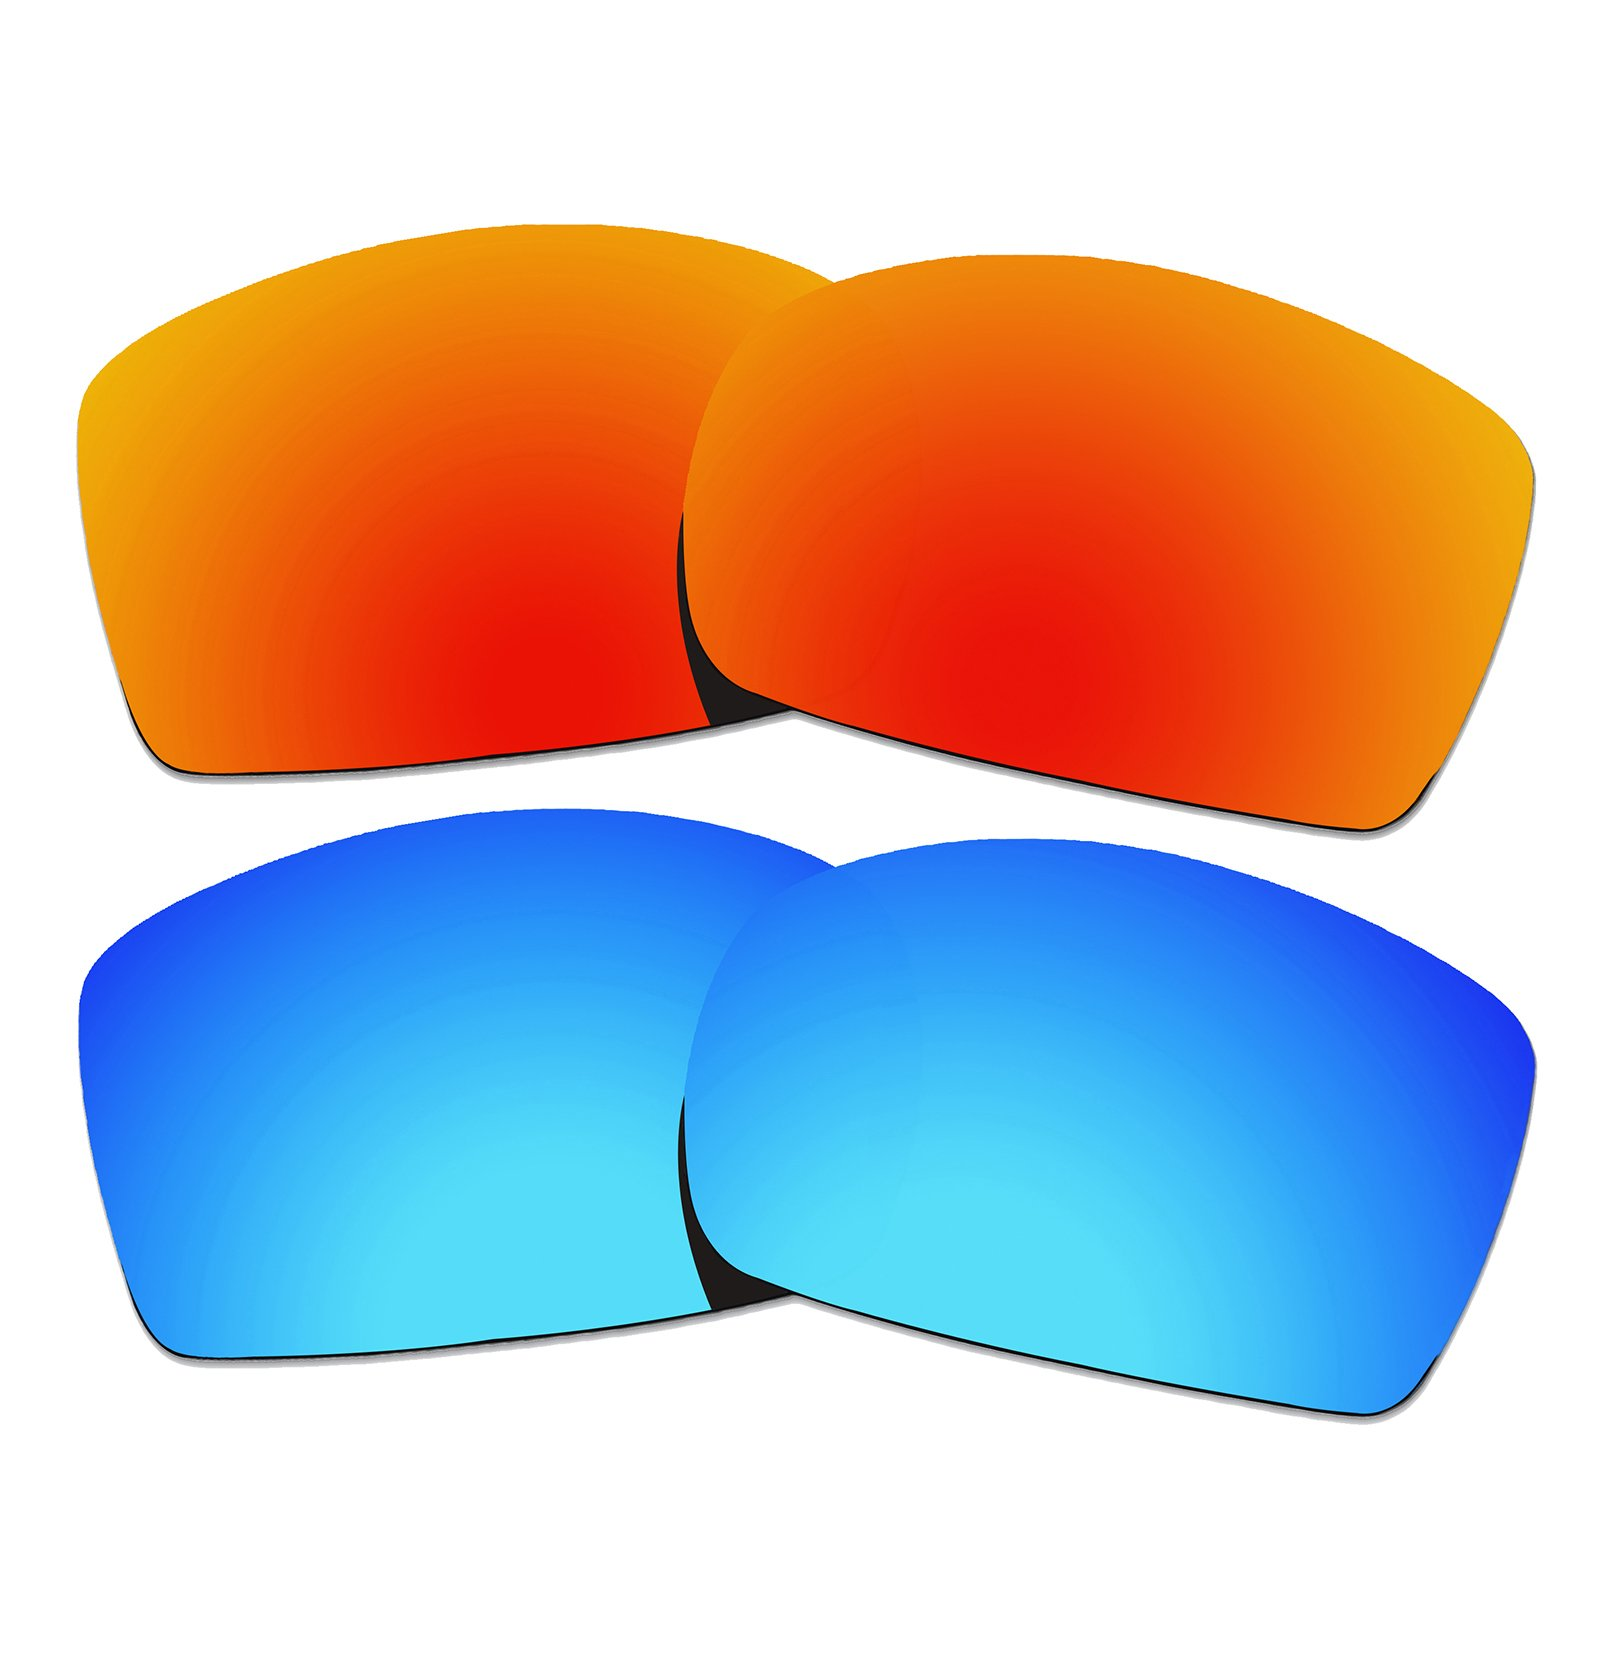 2 Pairs COLOR STAY LENSES 2.0mm Thickness Polarized Replacement Lenses for Oakley Square Wire II New (OO4075) Sunglasses Fire Red Mirror & Blue Mirror by COLOR STAY LENSES